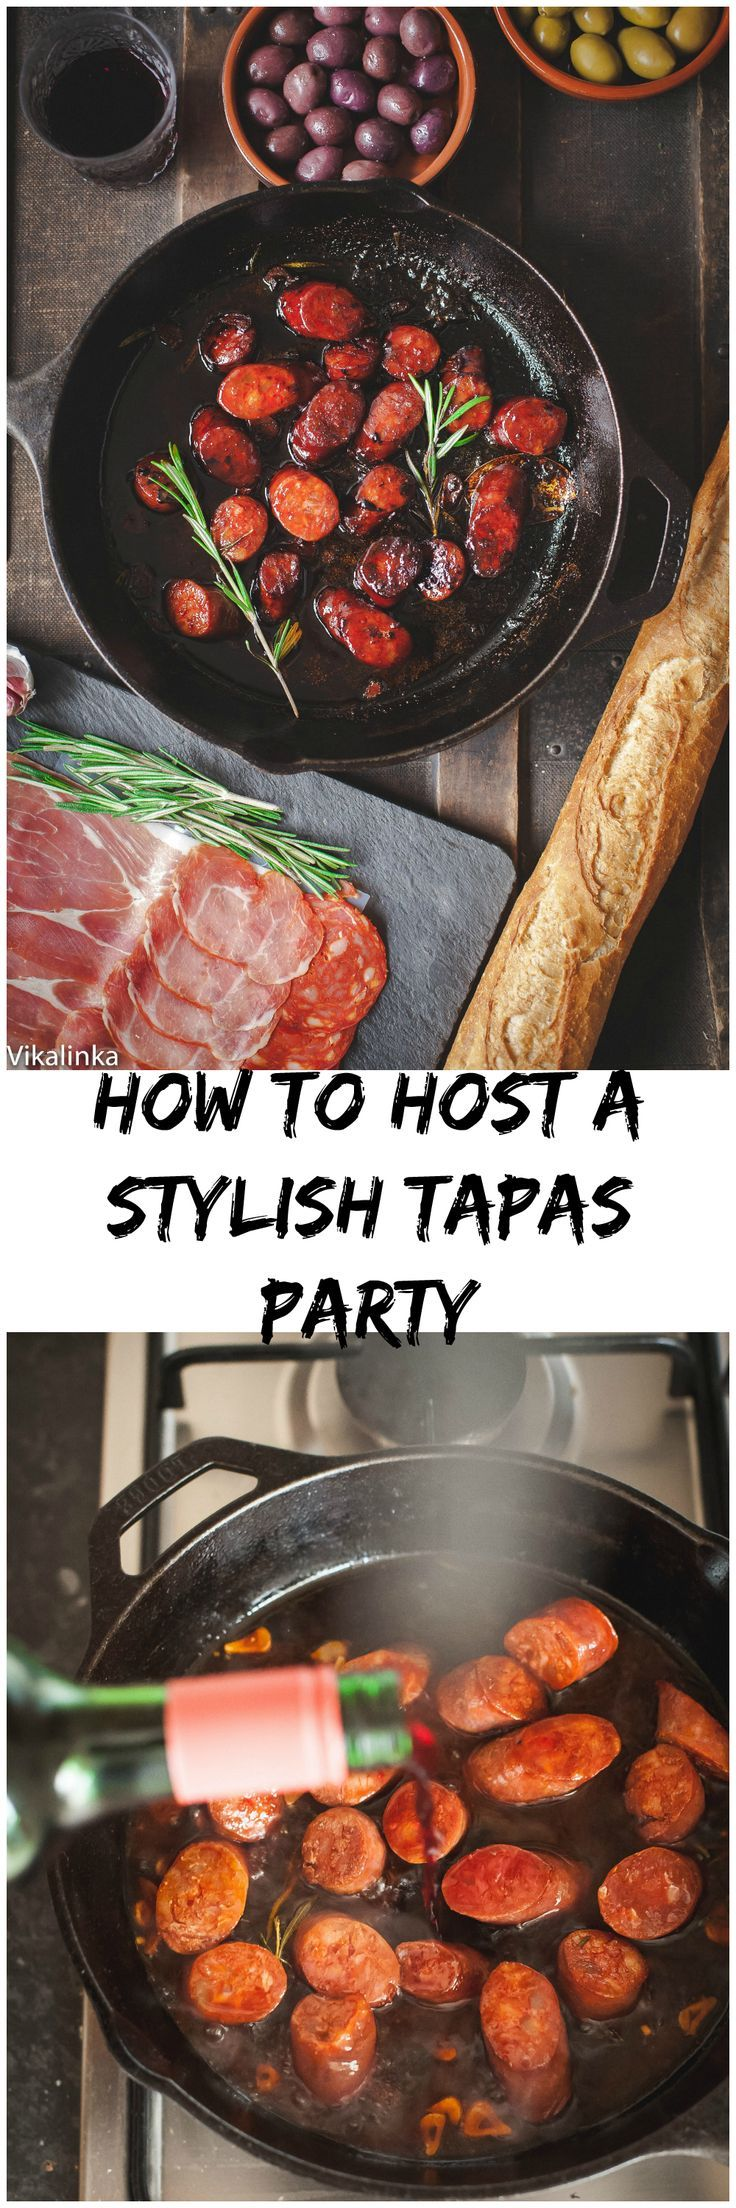 All you need to know to throw a successful wine and tapas party! #redwine #chorizo #tapas